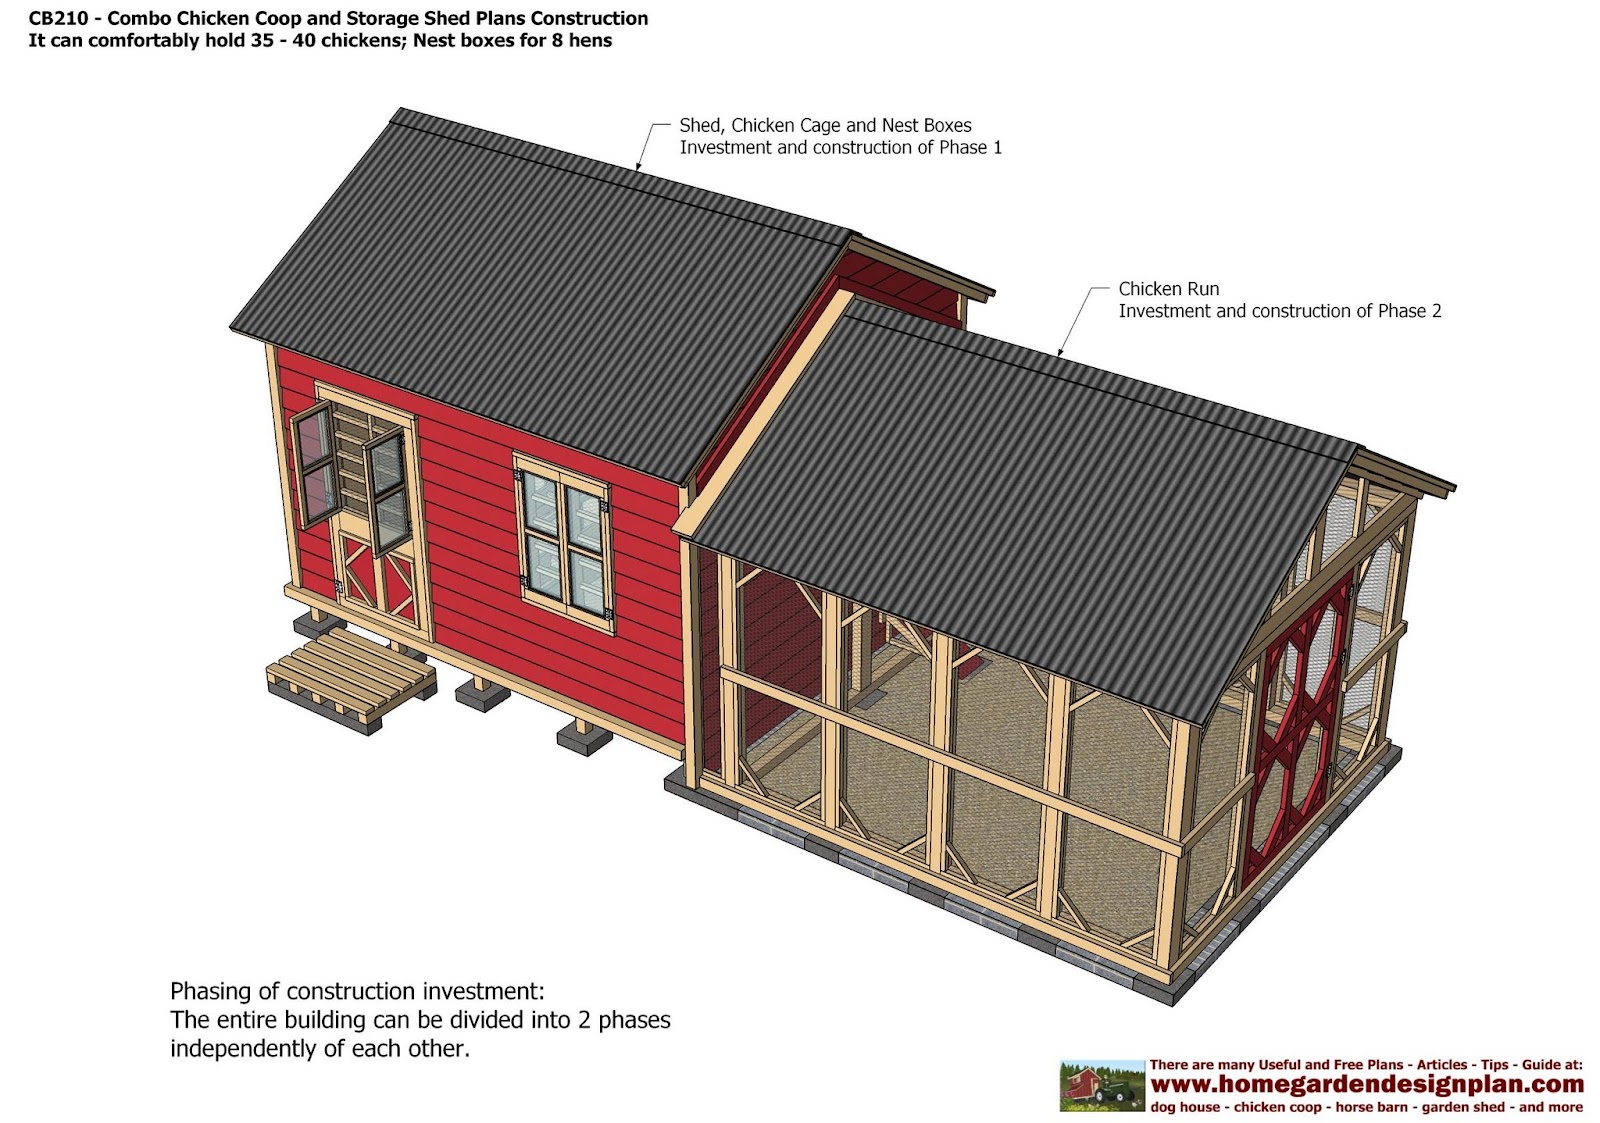 Home garden plans cb210 combo plans chicken coop for Storage shed playhouse combo plans